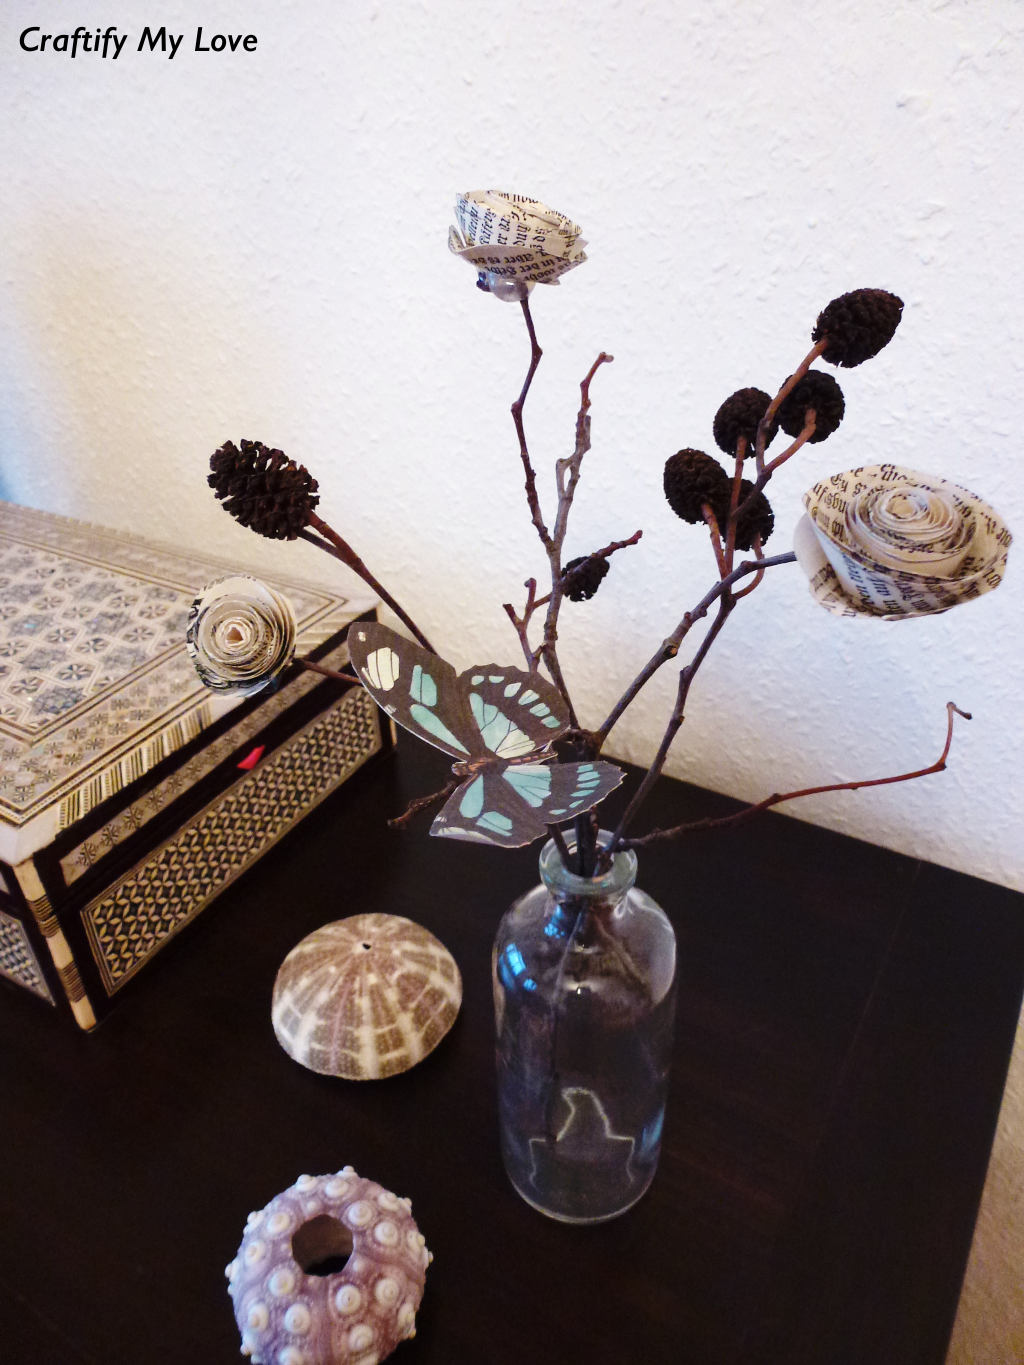 This image shows an ever blooming diy paper rose bush made out of old book pages